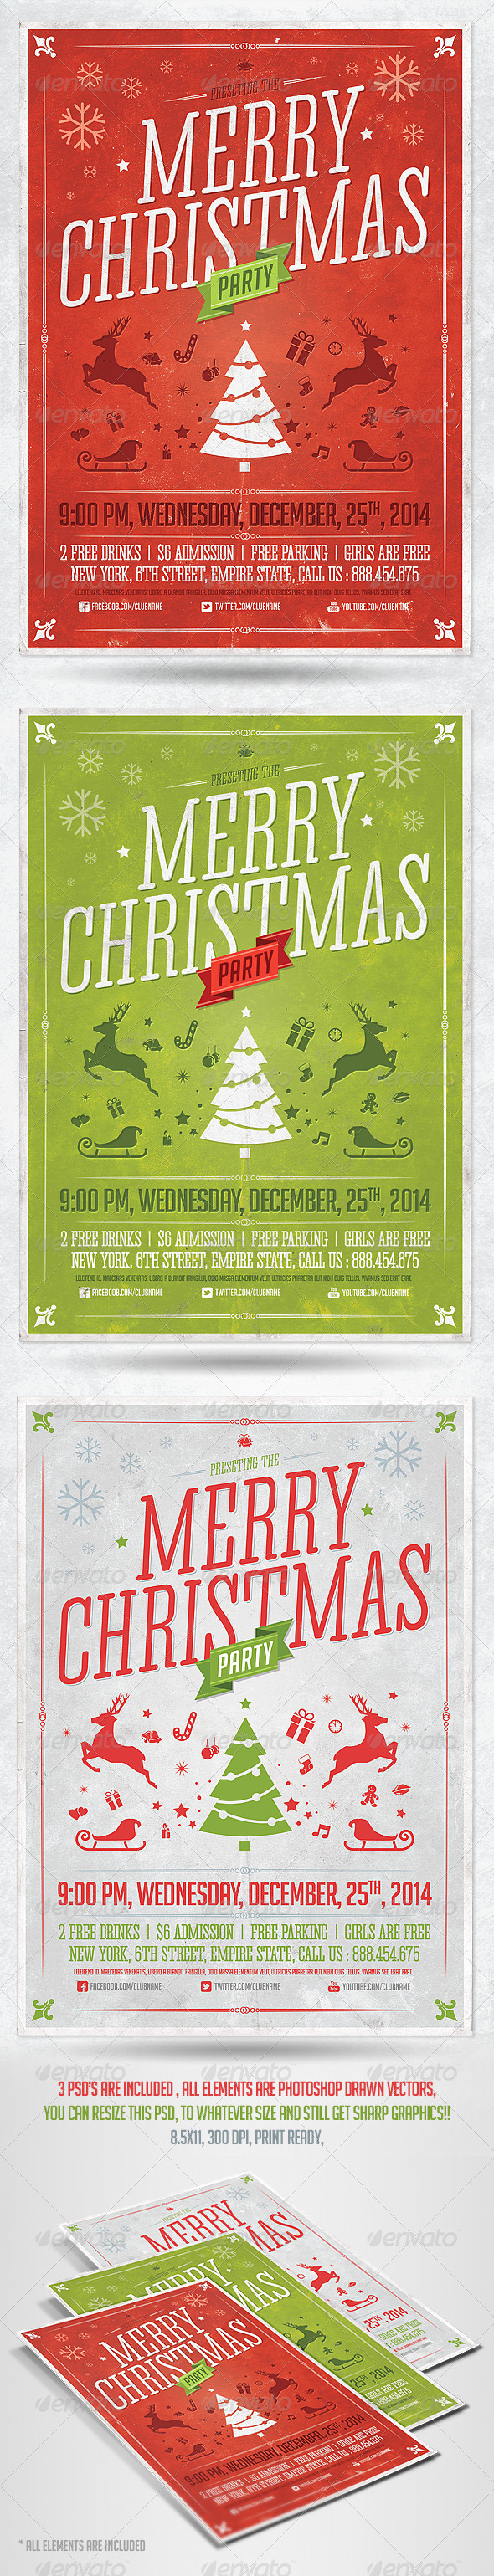 Retro Christmas Party Flyer Template - Holidays Events